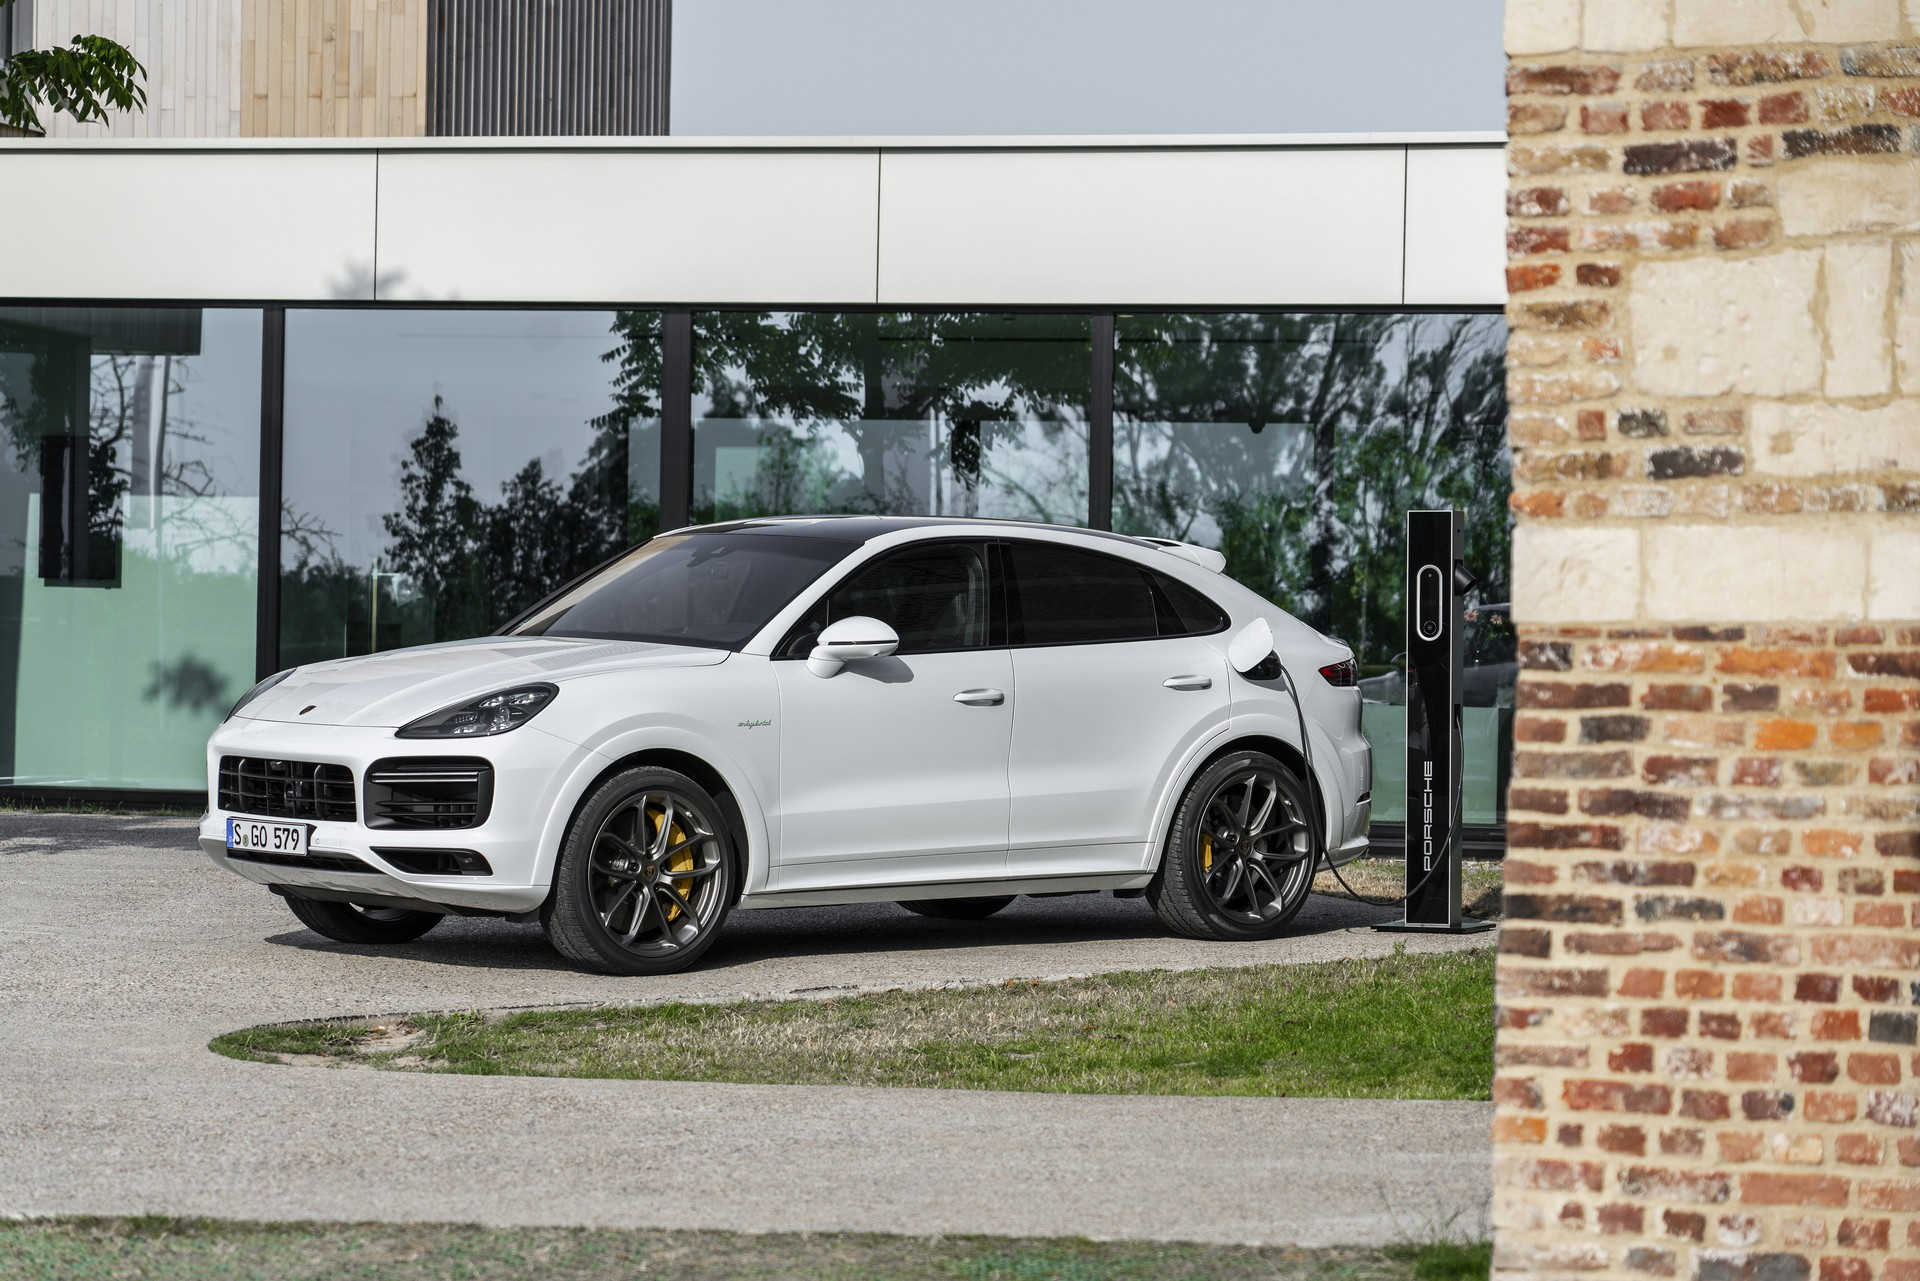 Porsche Cayenne hybrid models bring the power